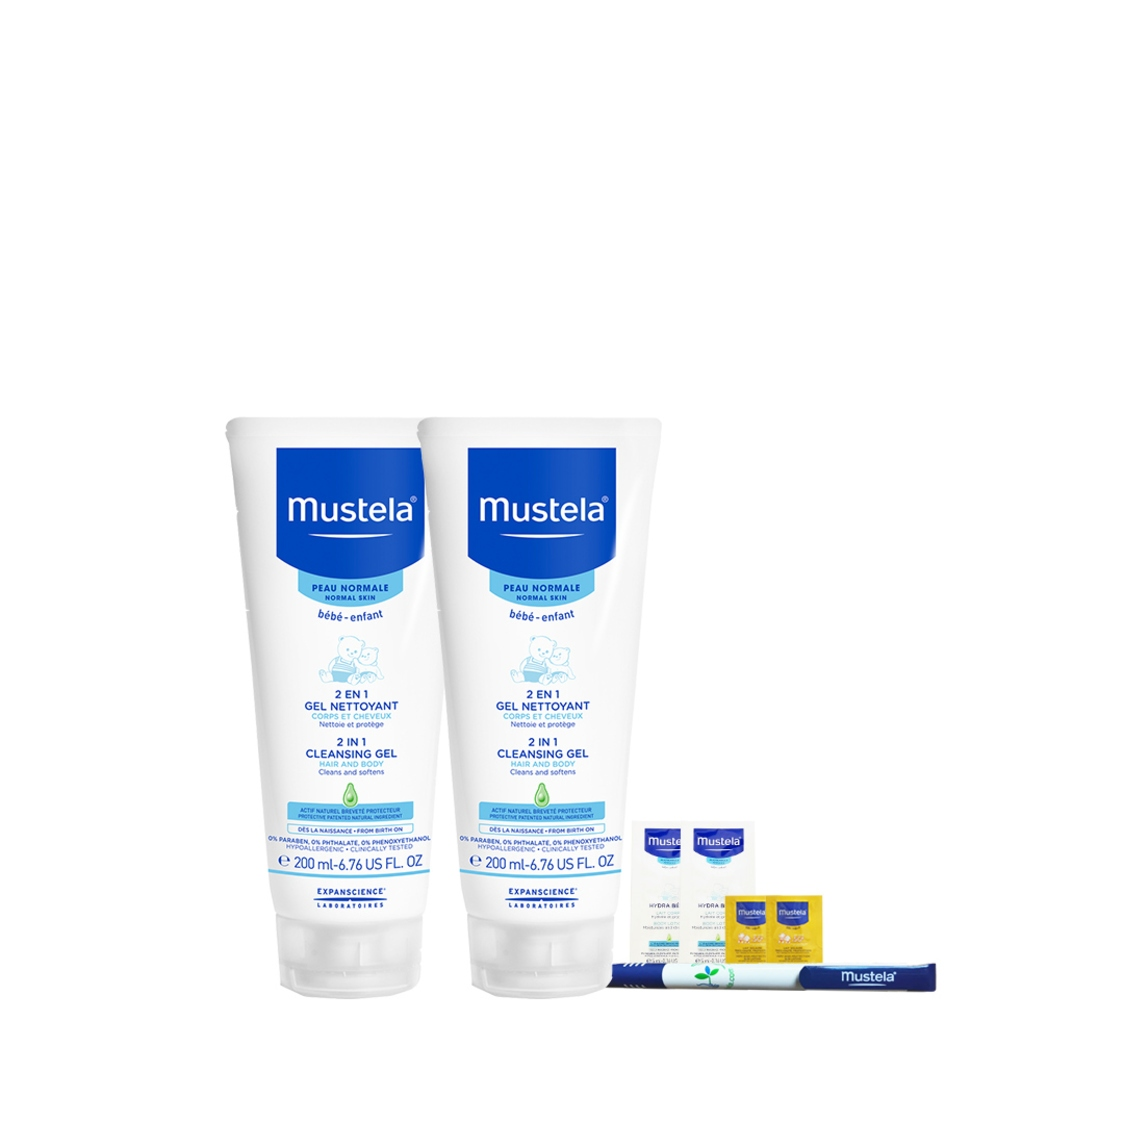 2 in 1 Cleansing Gel Twin Pack